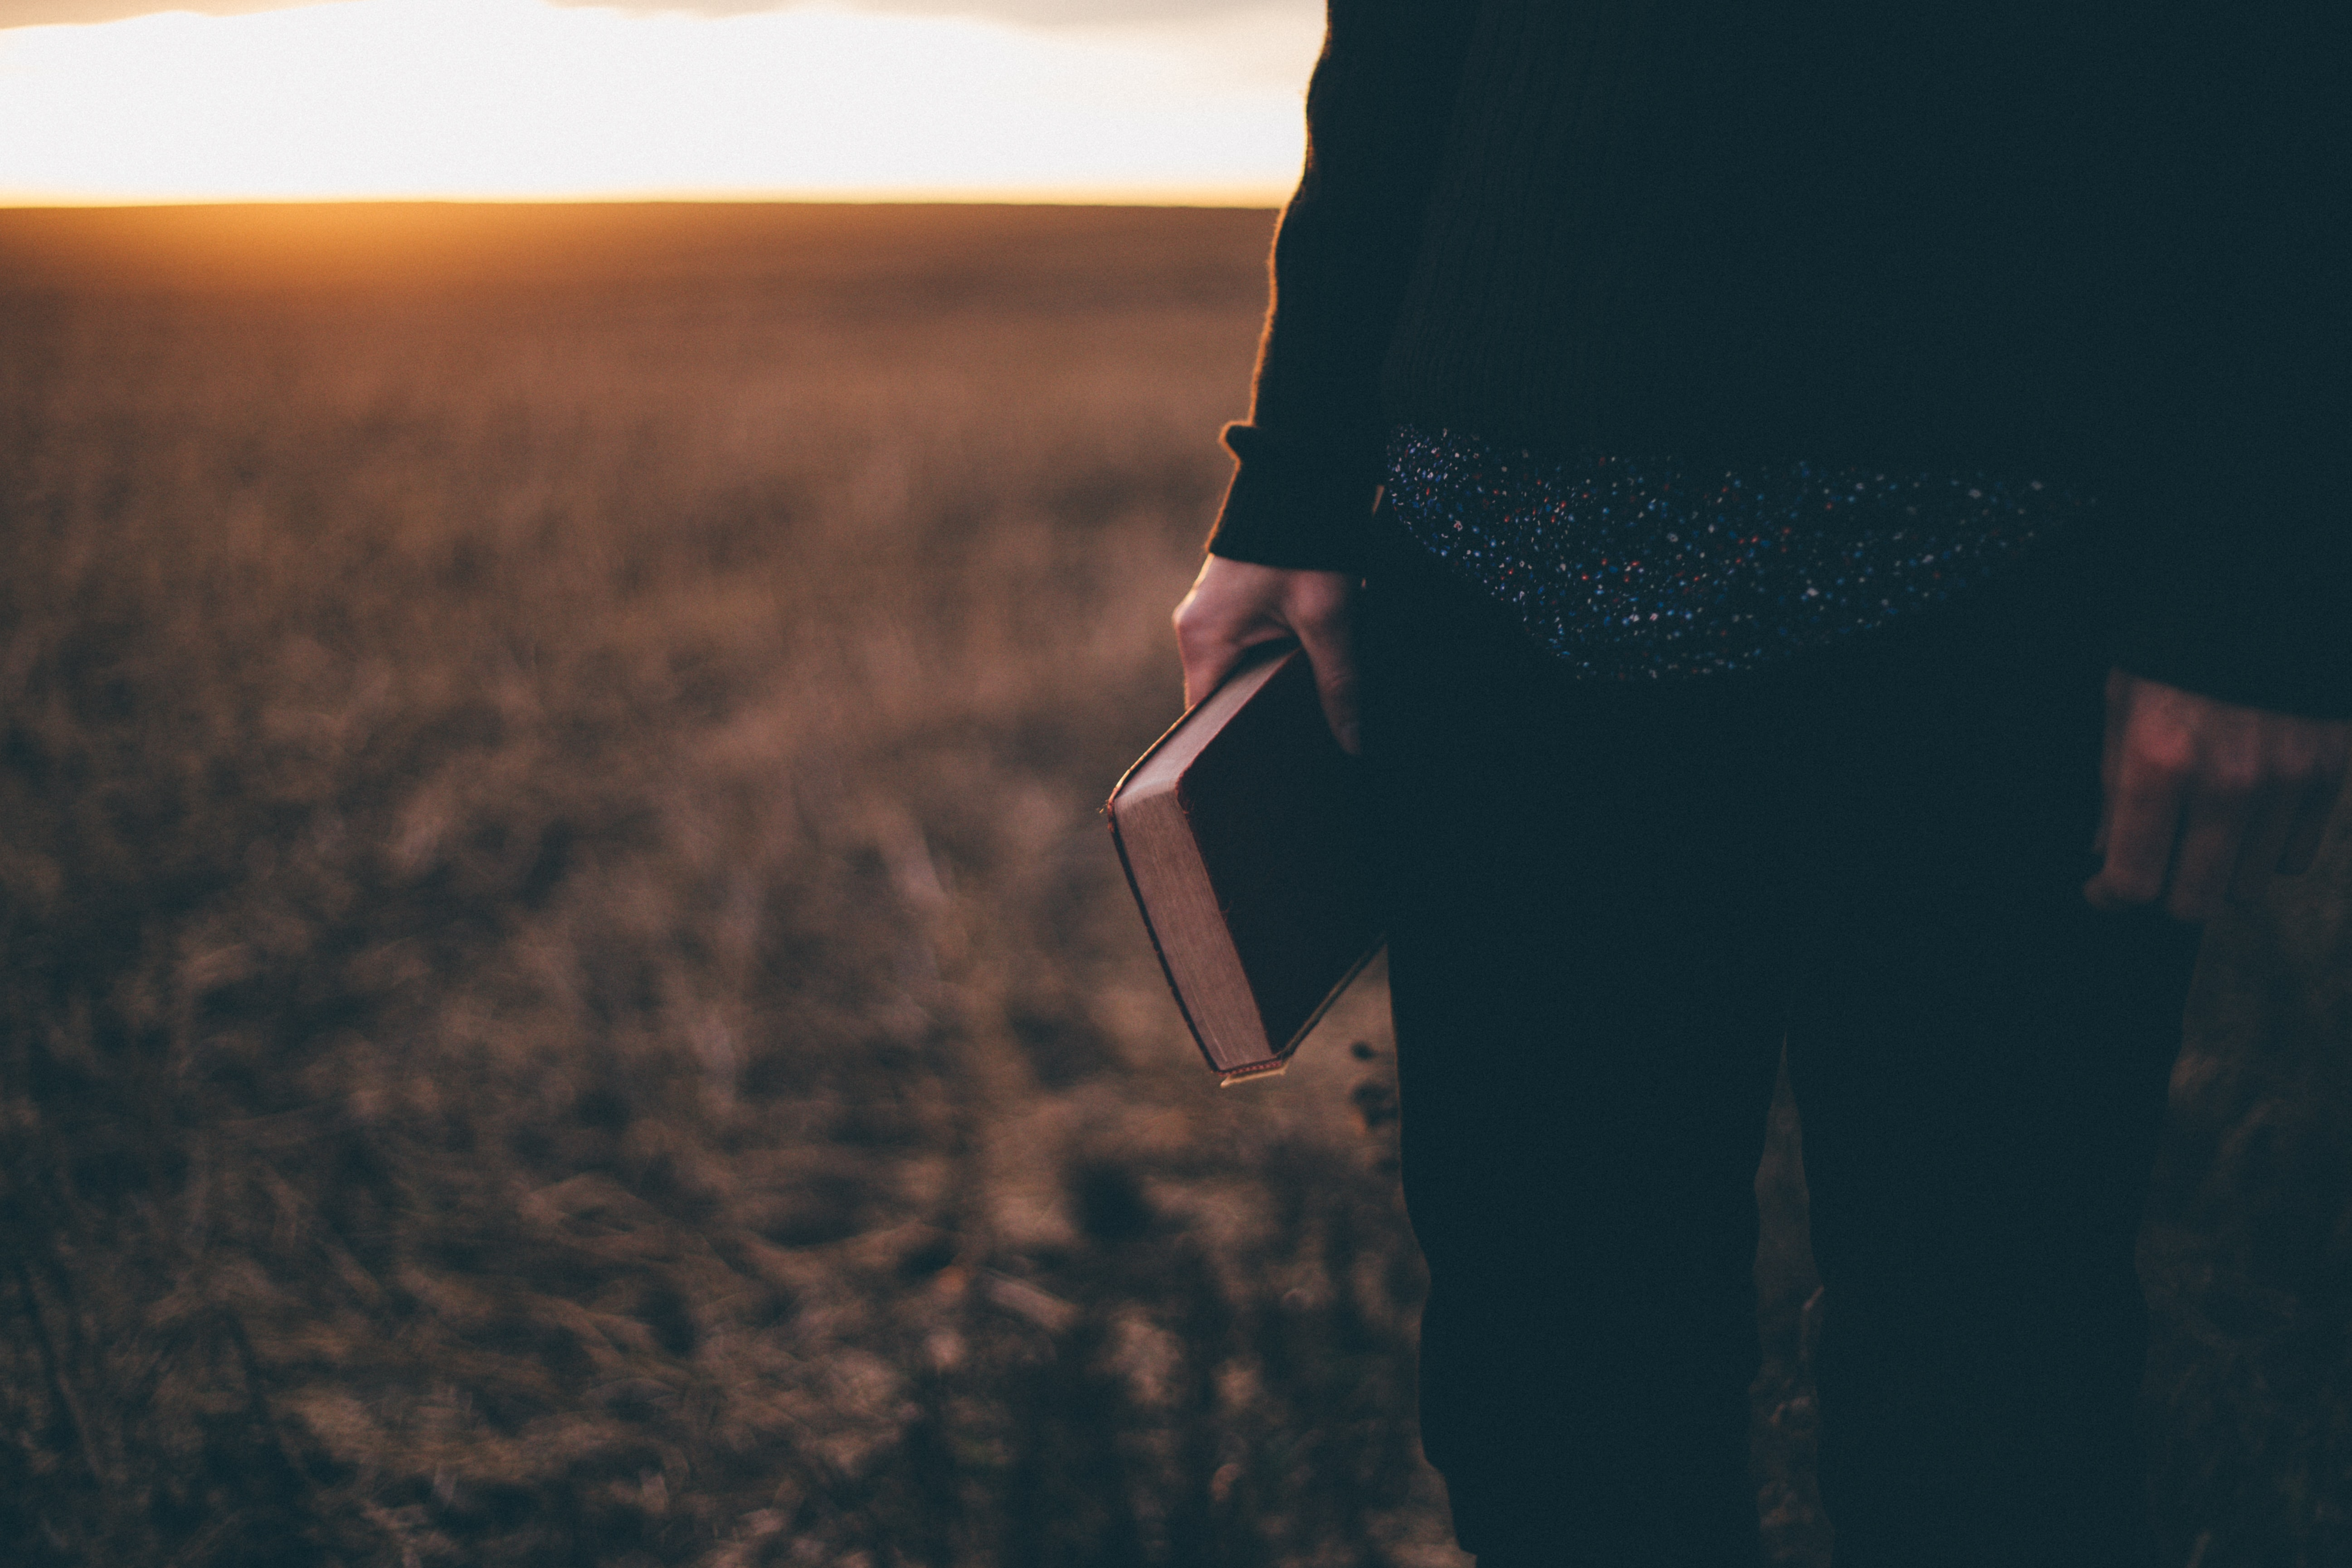 A person standing in a field and holding a Bible